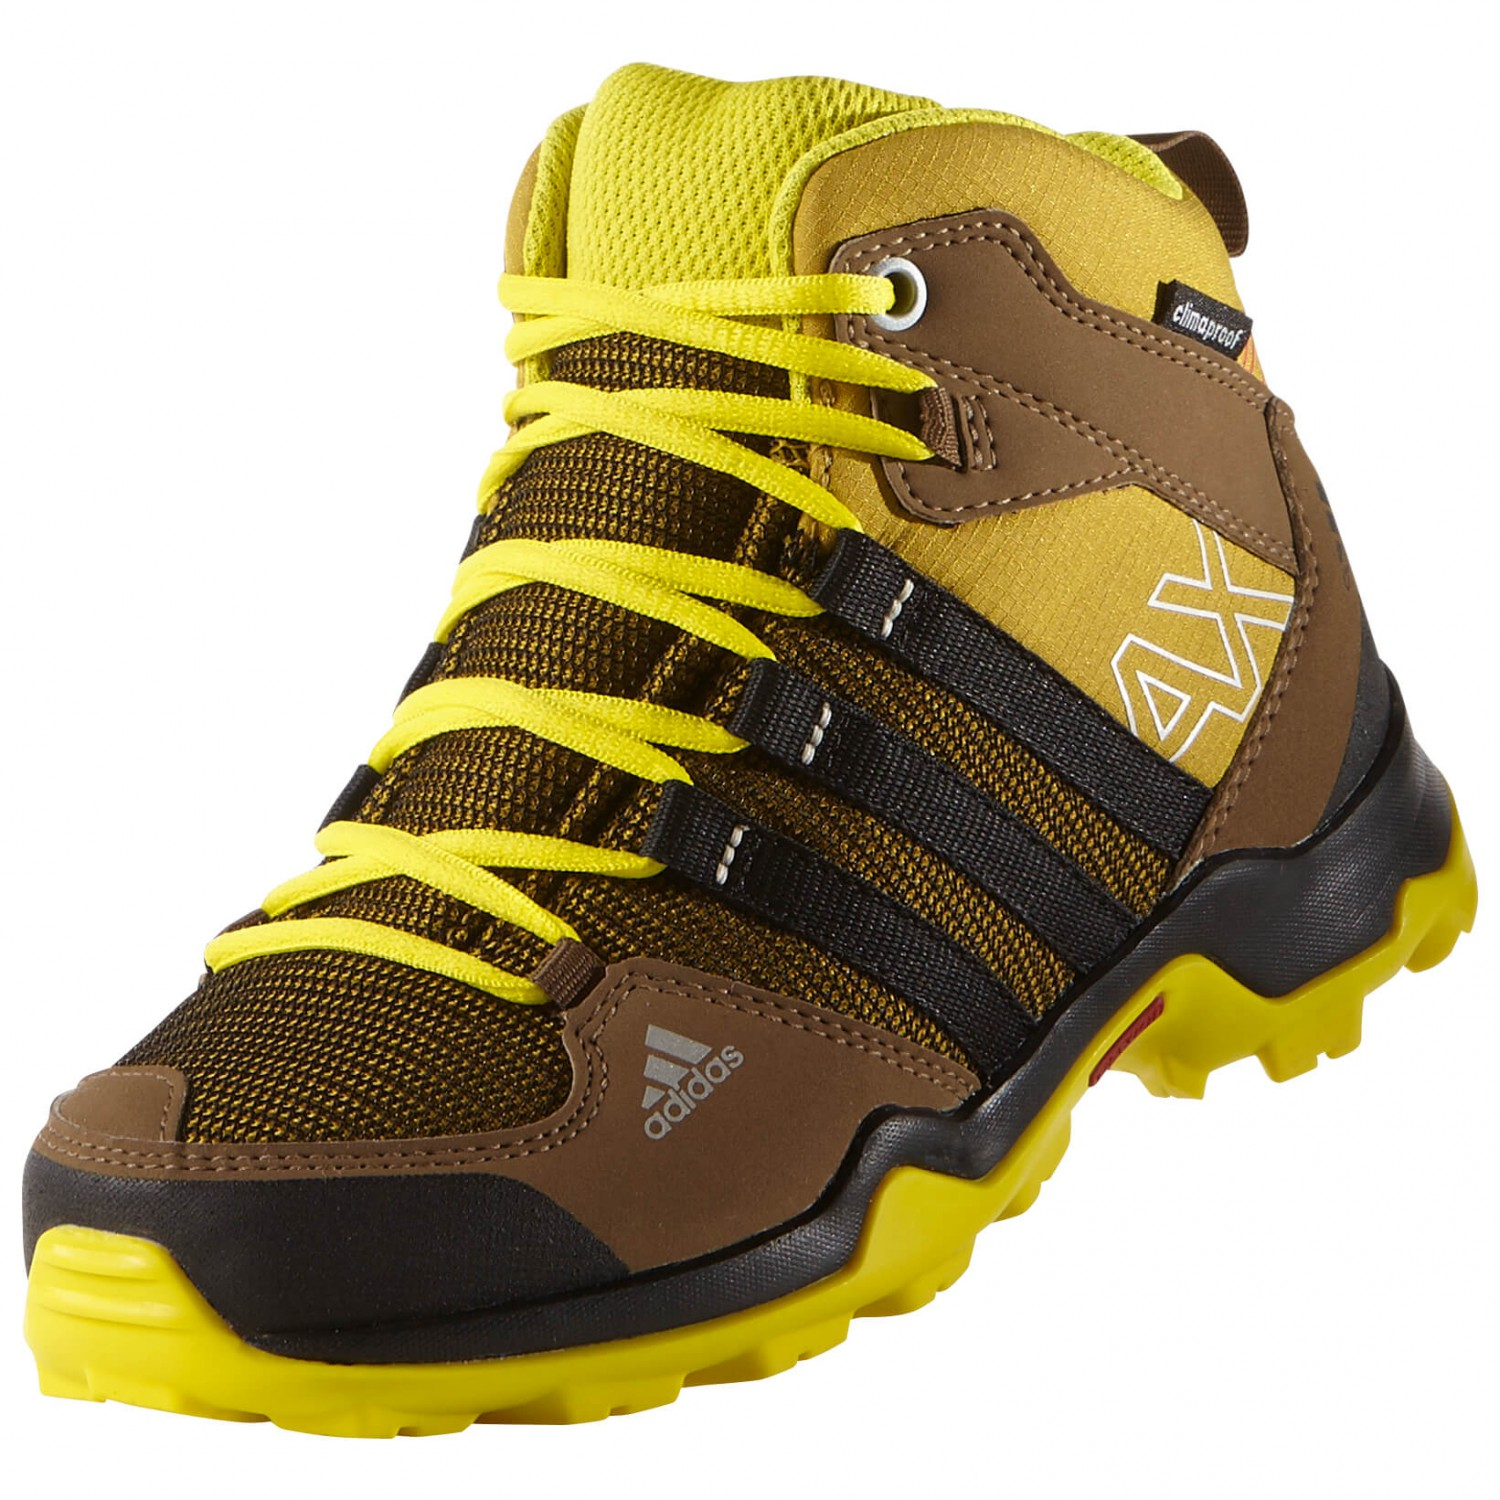 adidas wanderschuhe kinder. Black Bedroom Furniture Sets. Home Design Ideas